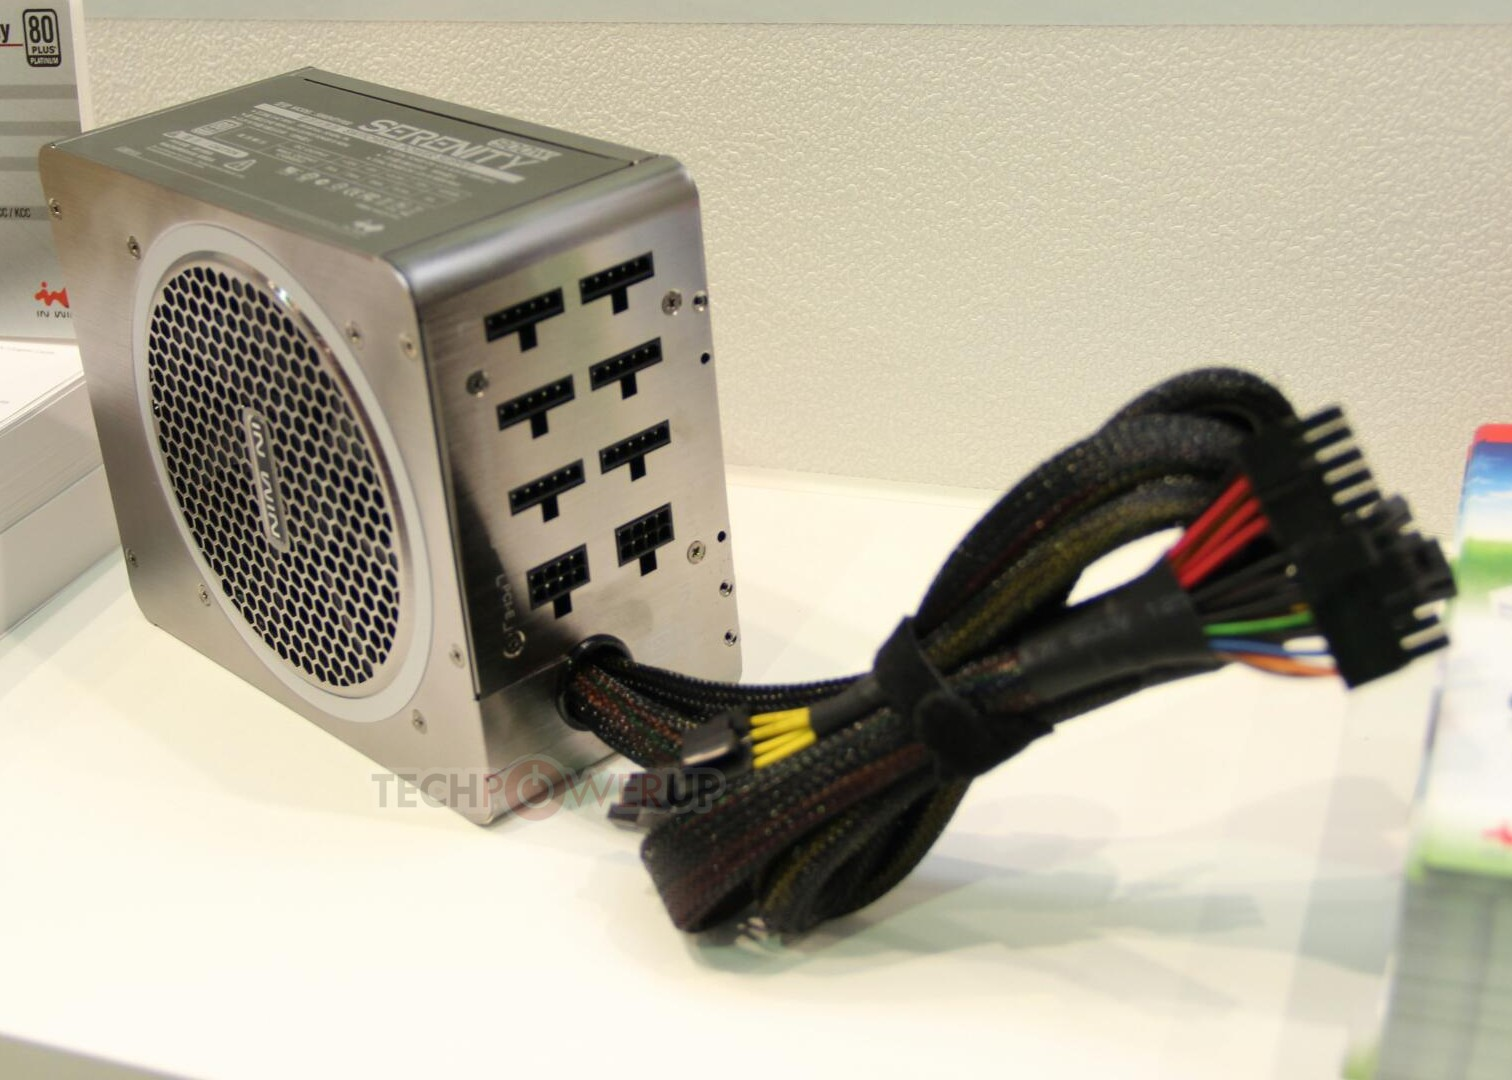 In Win Shows Off Serenity Series PSUs   TechPowerUp